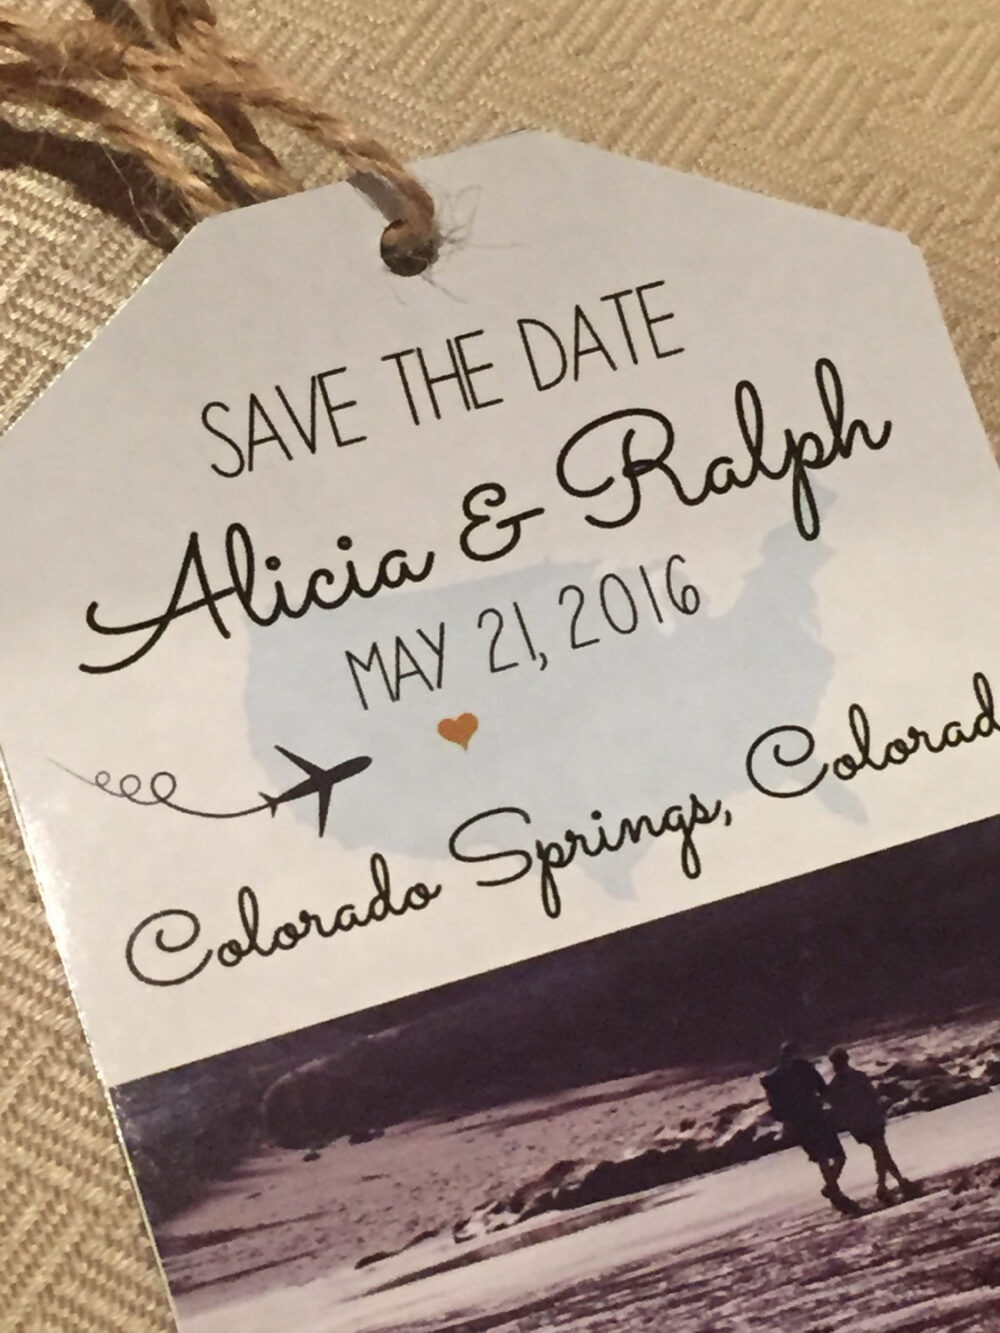 Destination Wedding Invitation Save The Date Luggage Tag. Engagement Photo Save Date